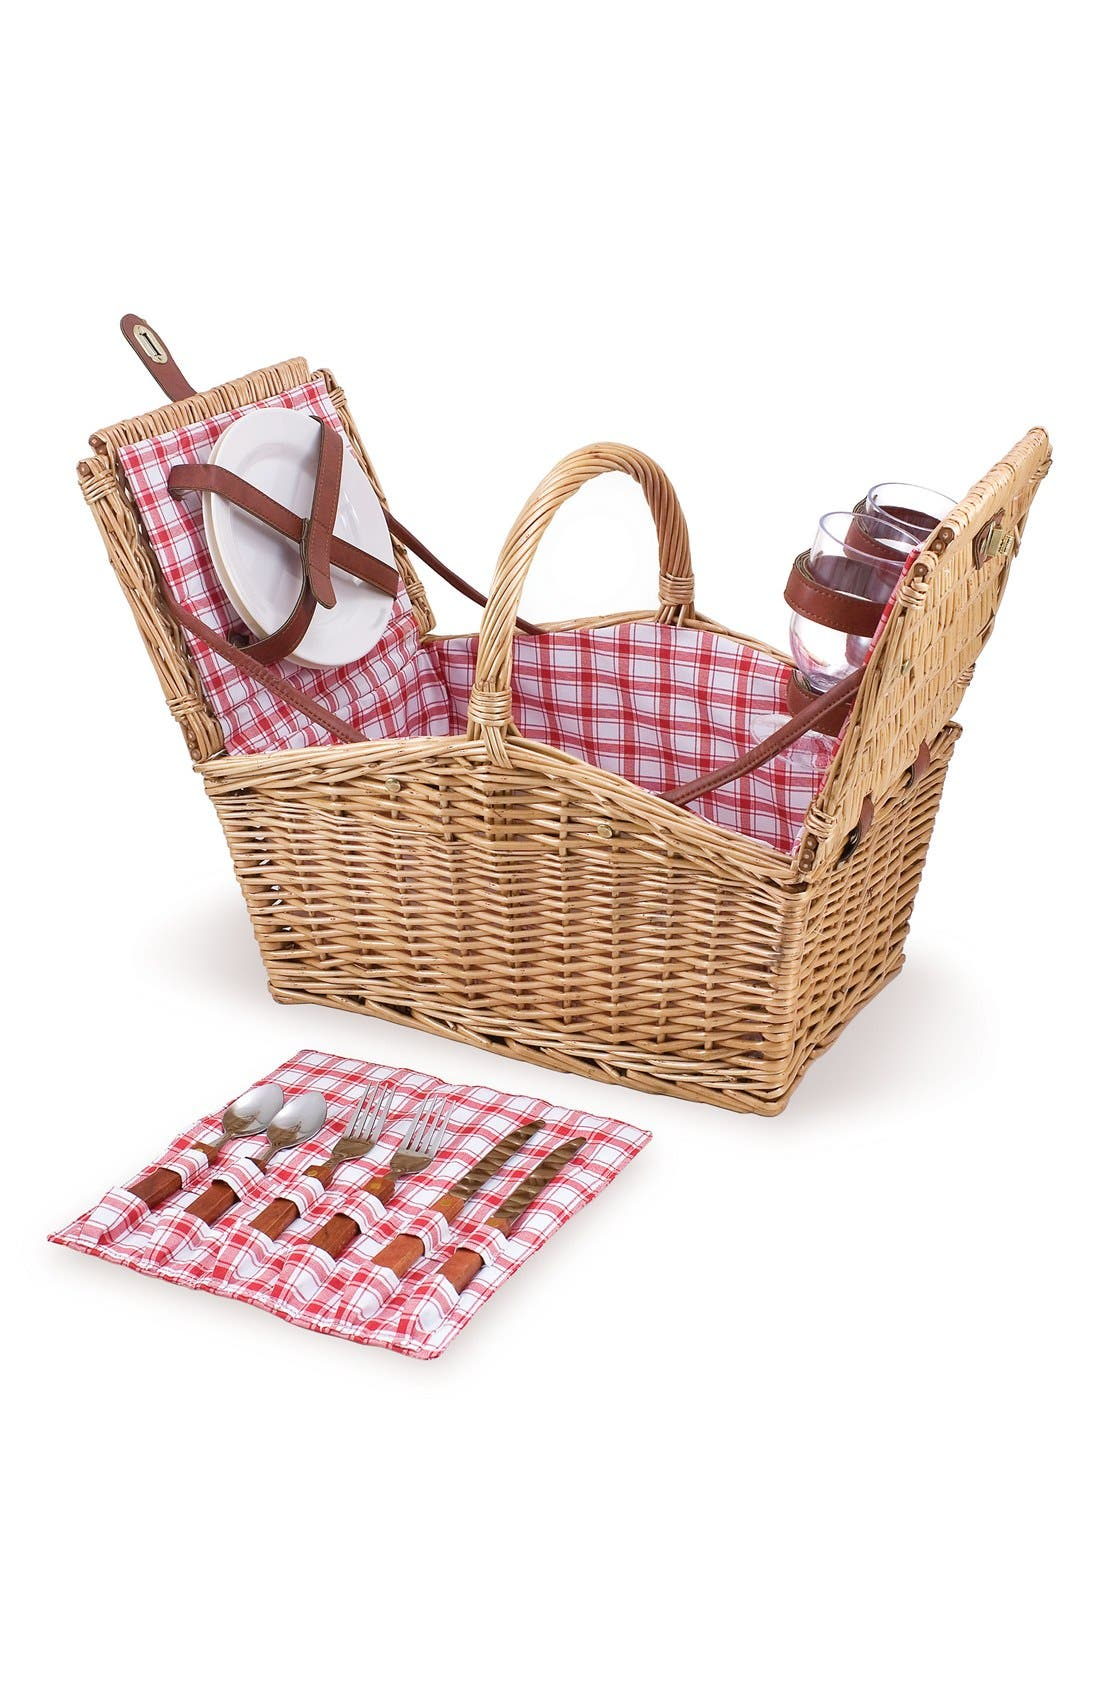 Alternate Image 1 Selected - Picnic Time 'Piccadilly' Wicker Picnic Basket